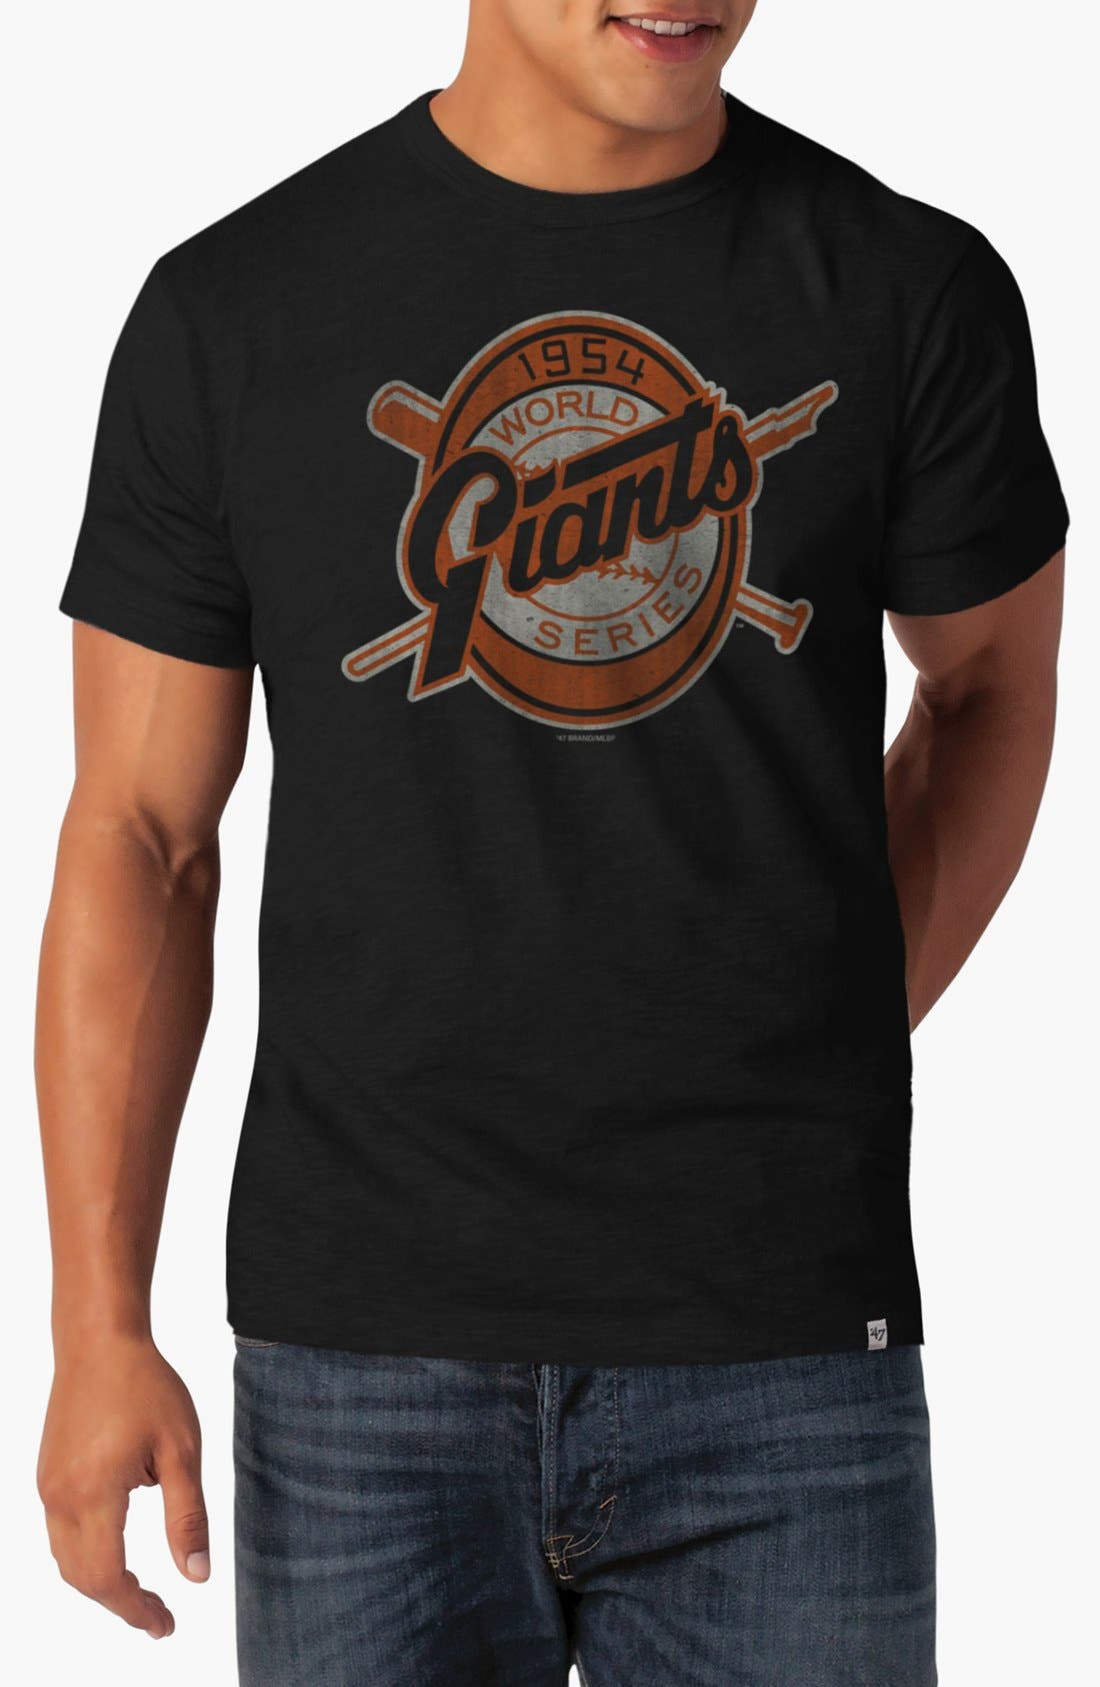 Main Image - Banner 47 'New York Giants World Series' Graphic T-Shirt